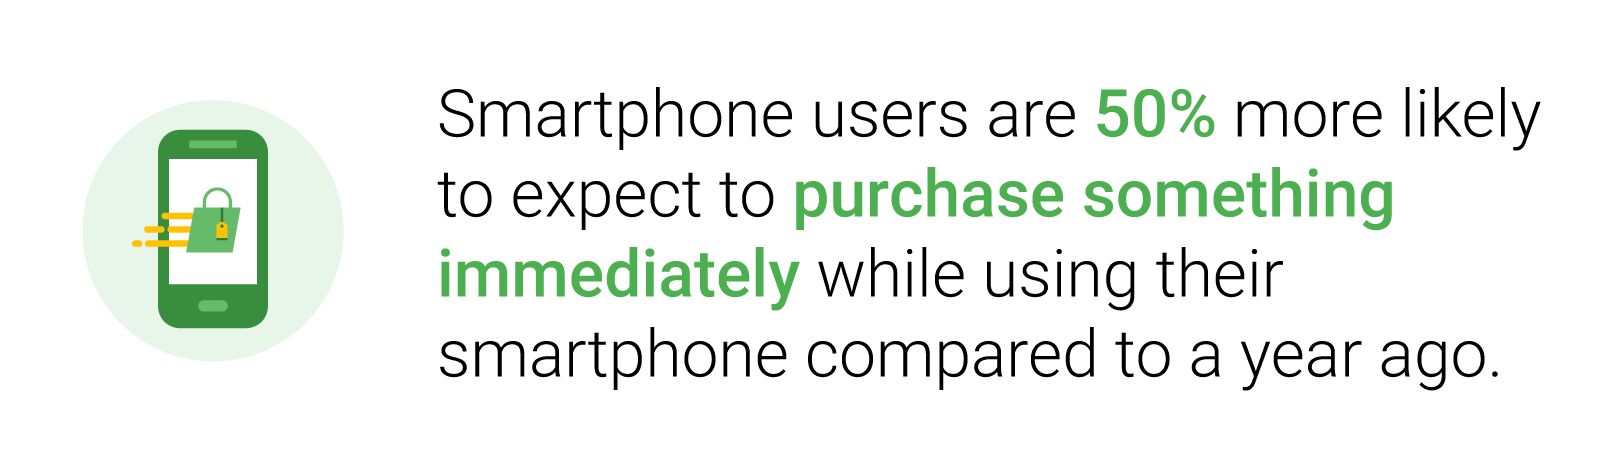 Smartphone users are 50% more likely to expect to purchase something immediately while using their smartphone compared to a year ago.